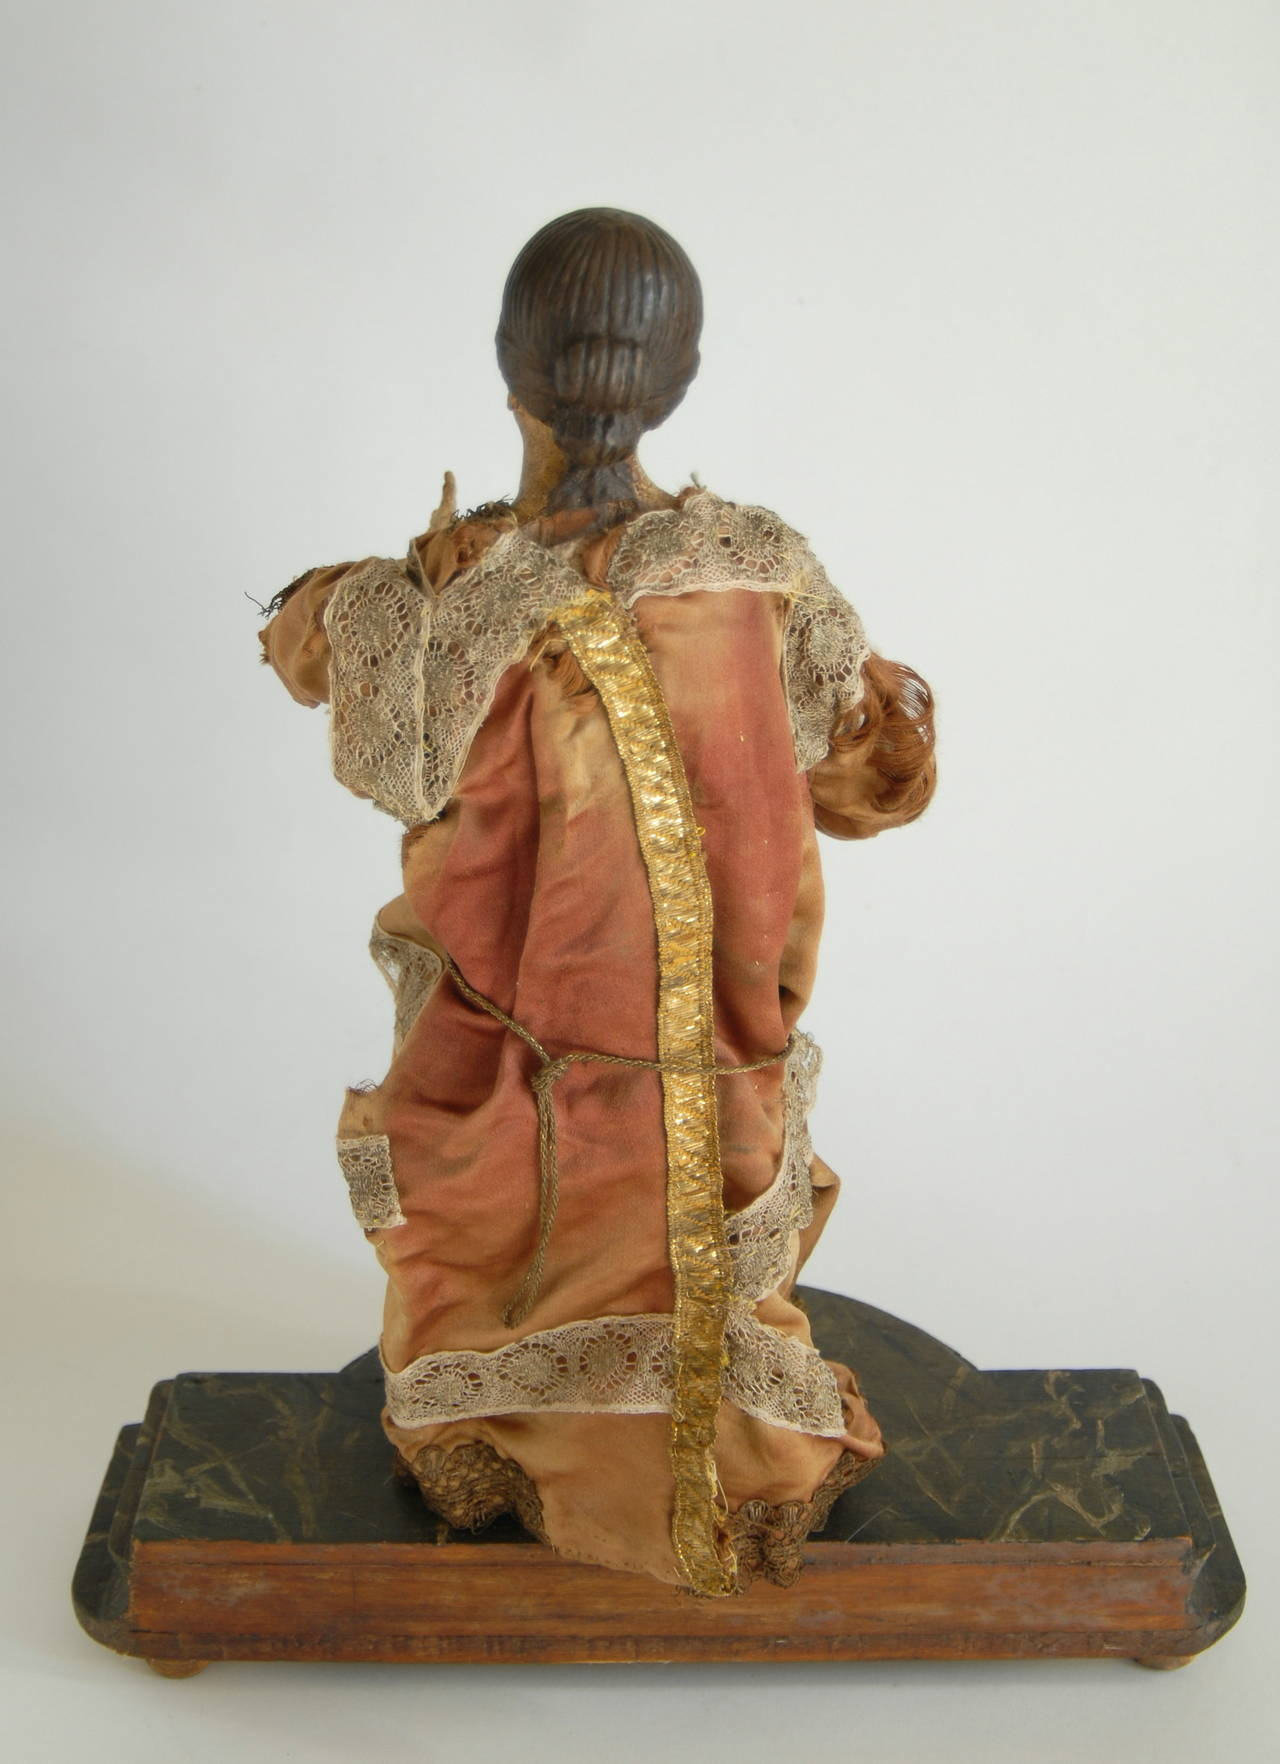 An Italian nativity figure from, circa 1840 with its original fabric costume. Carved from wood with articulated arms, gesso finished head, feet and hands and forearms, painted in naturalist colors, possibly re-painted at later times to maintain